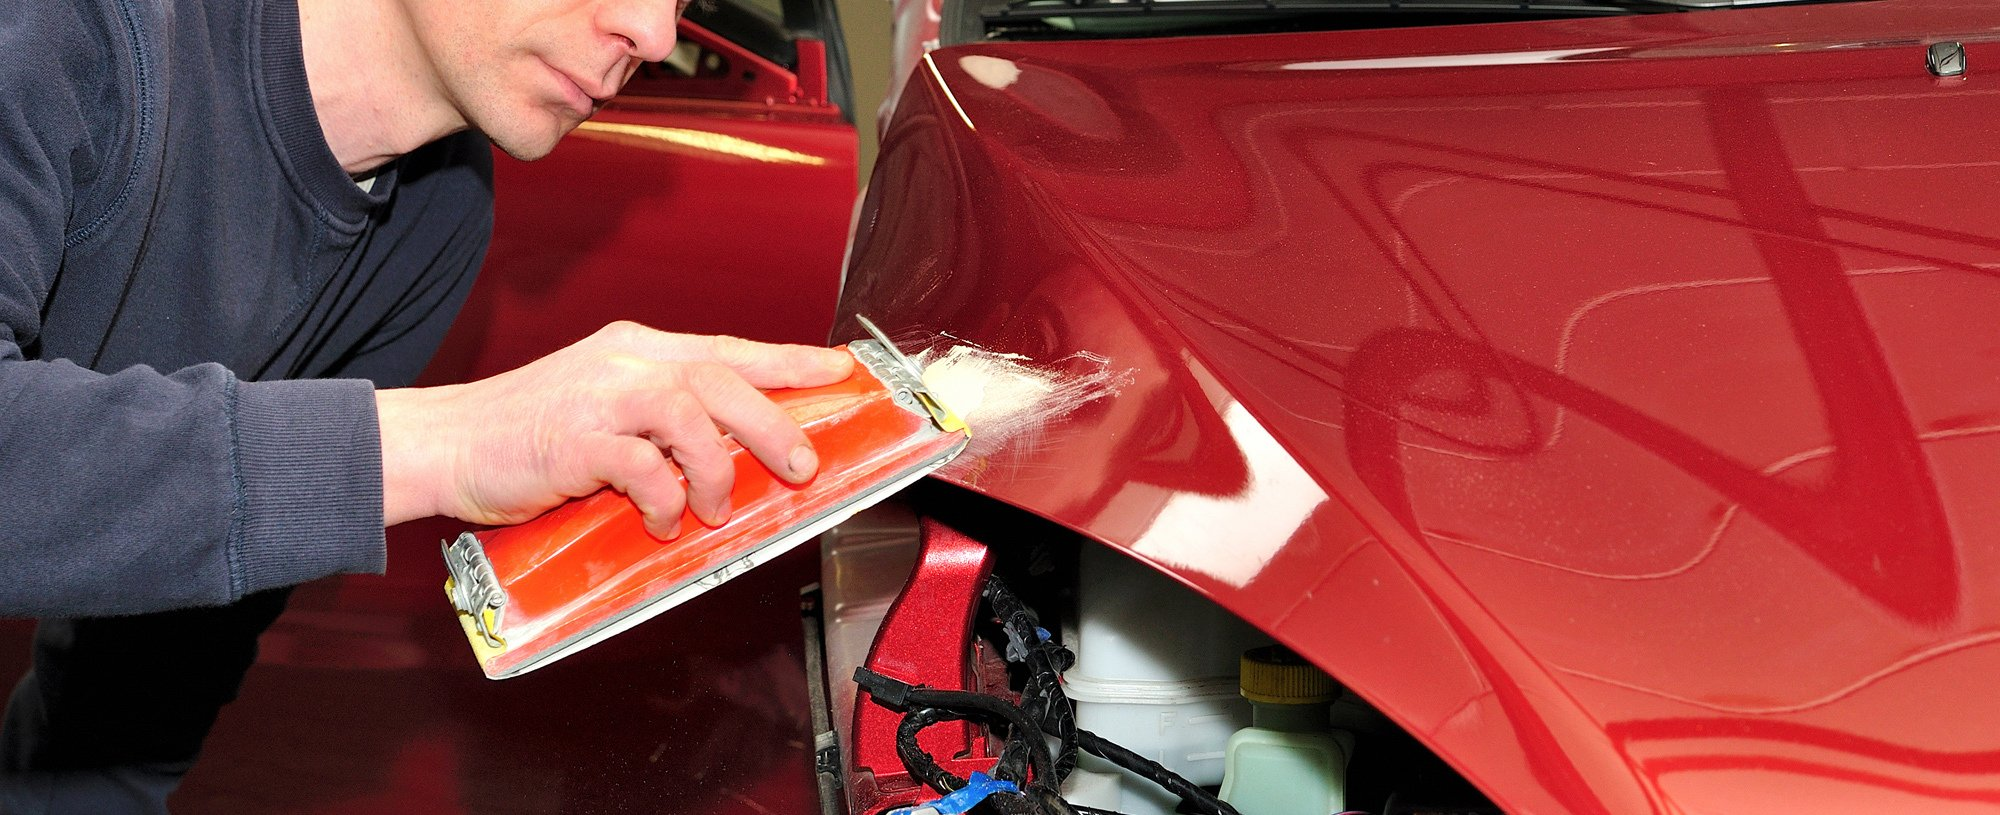 auto body technician sanding damaged quarter panel